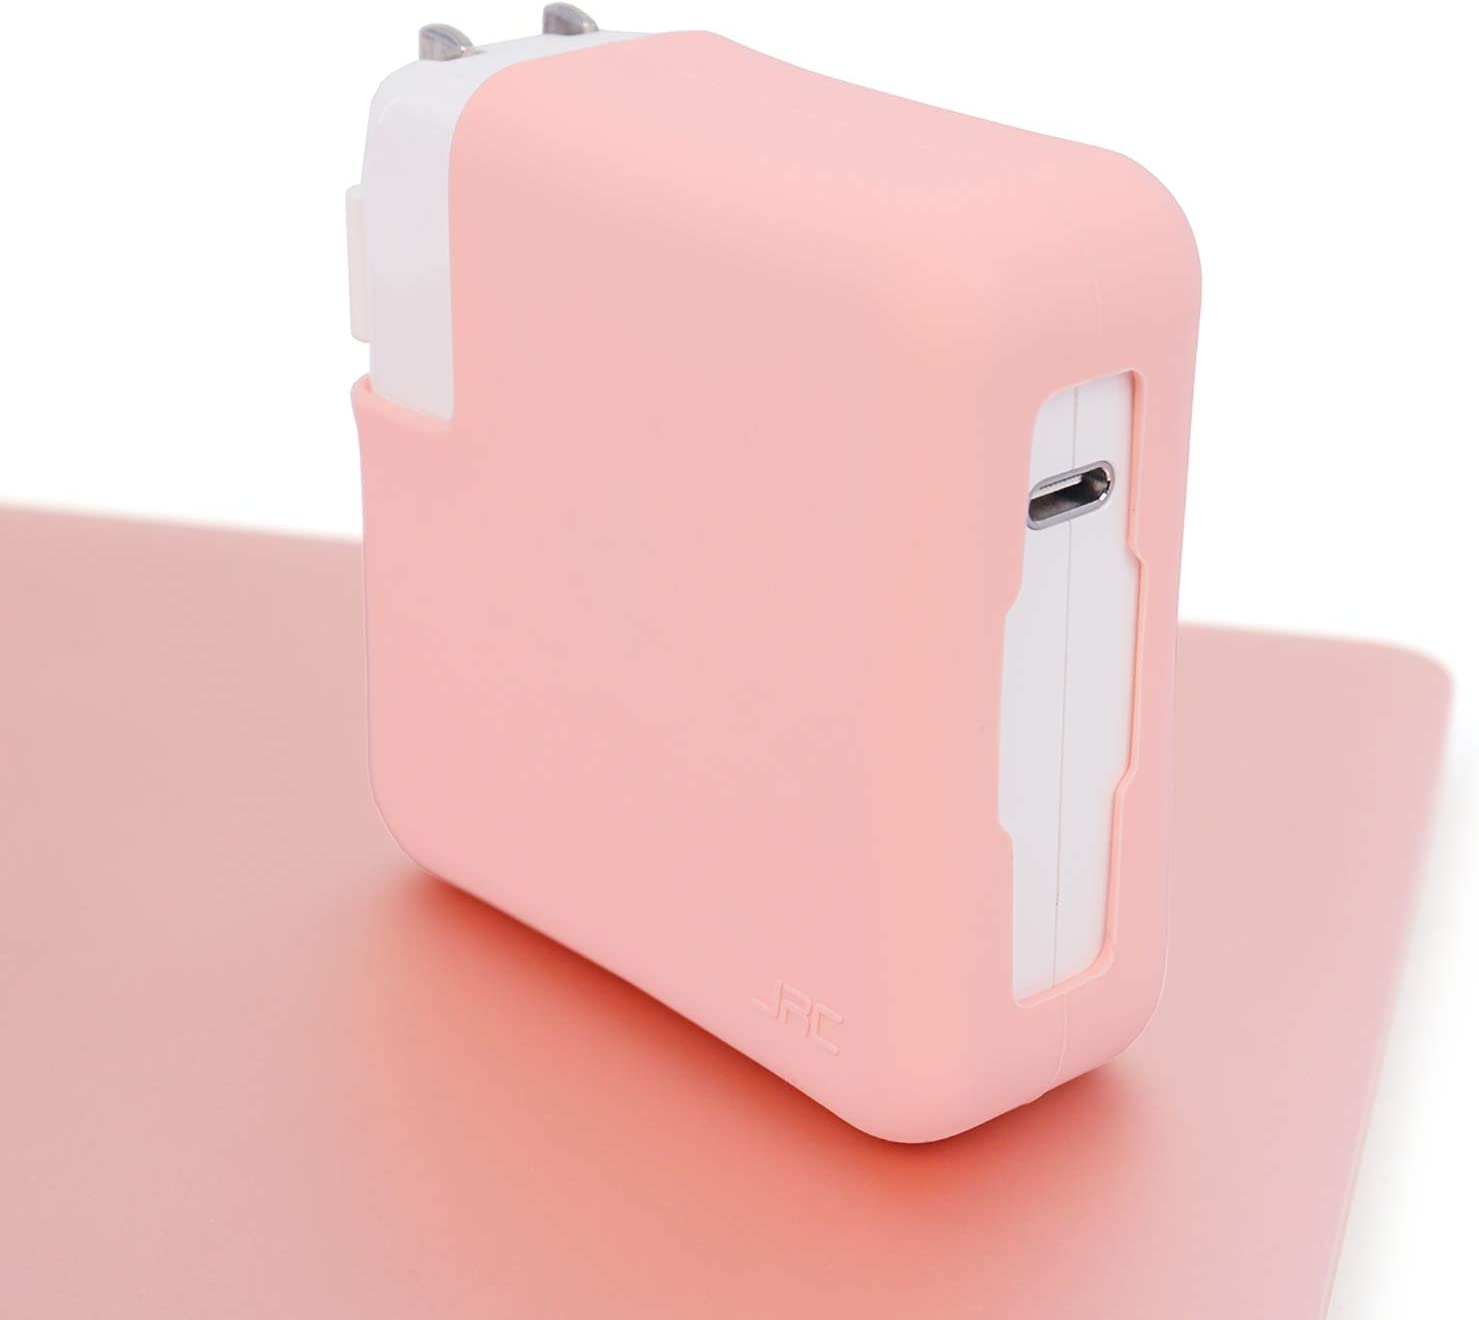 JRCMAX Laptop Charger Case,SiliconeCharger Case Cover for MacBook Pro 13